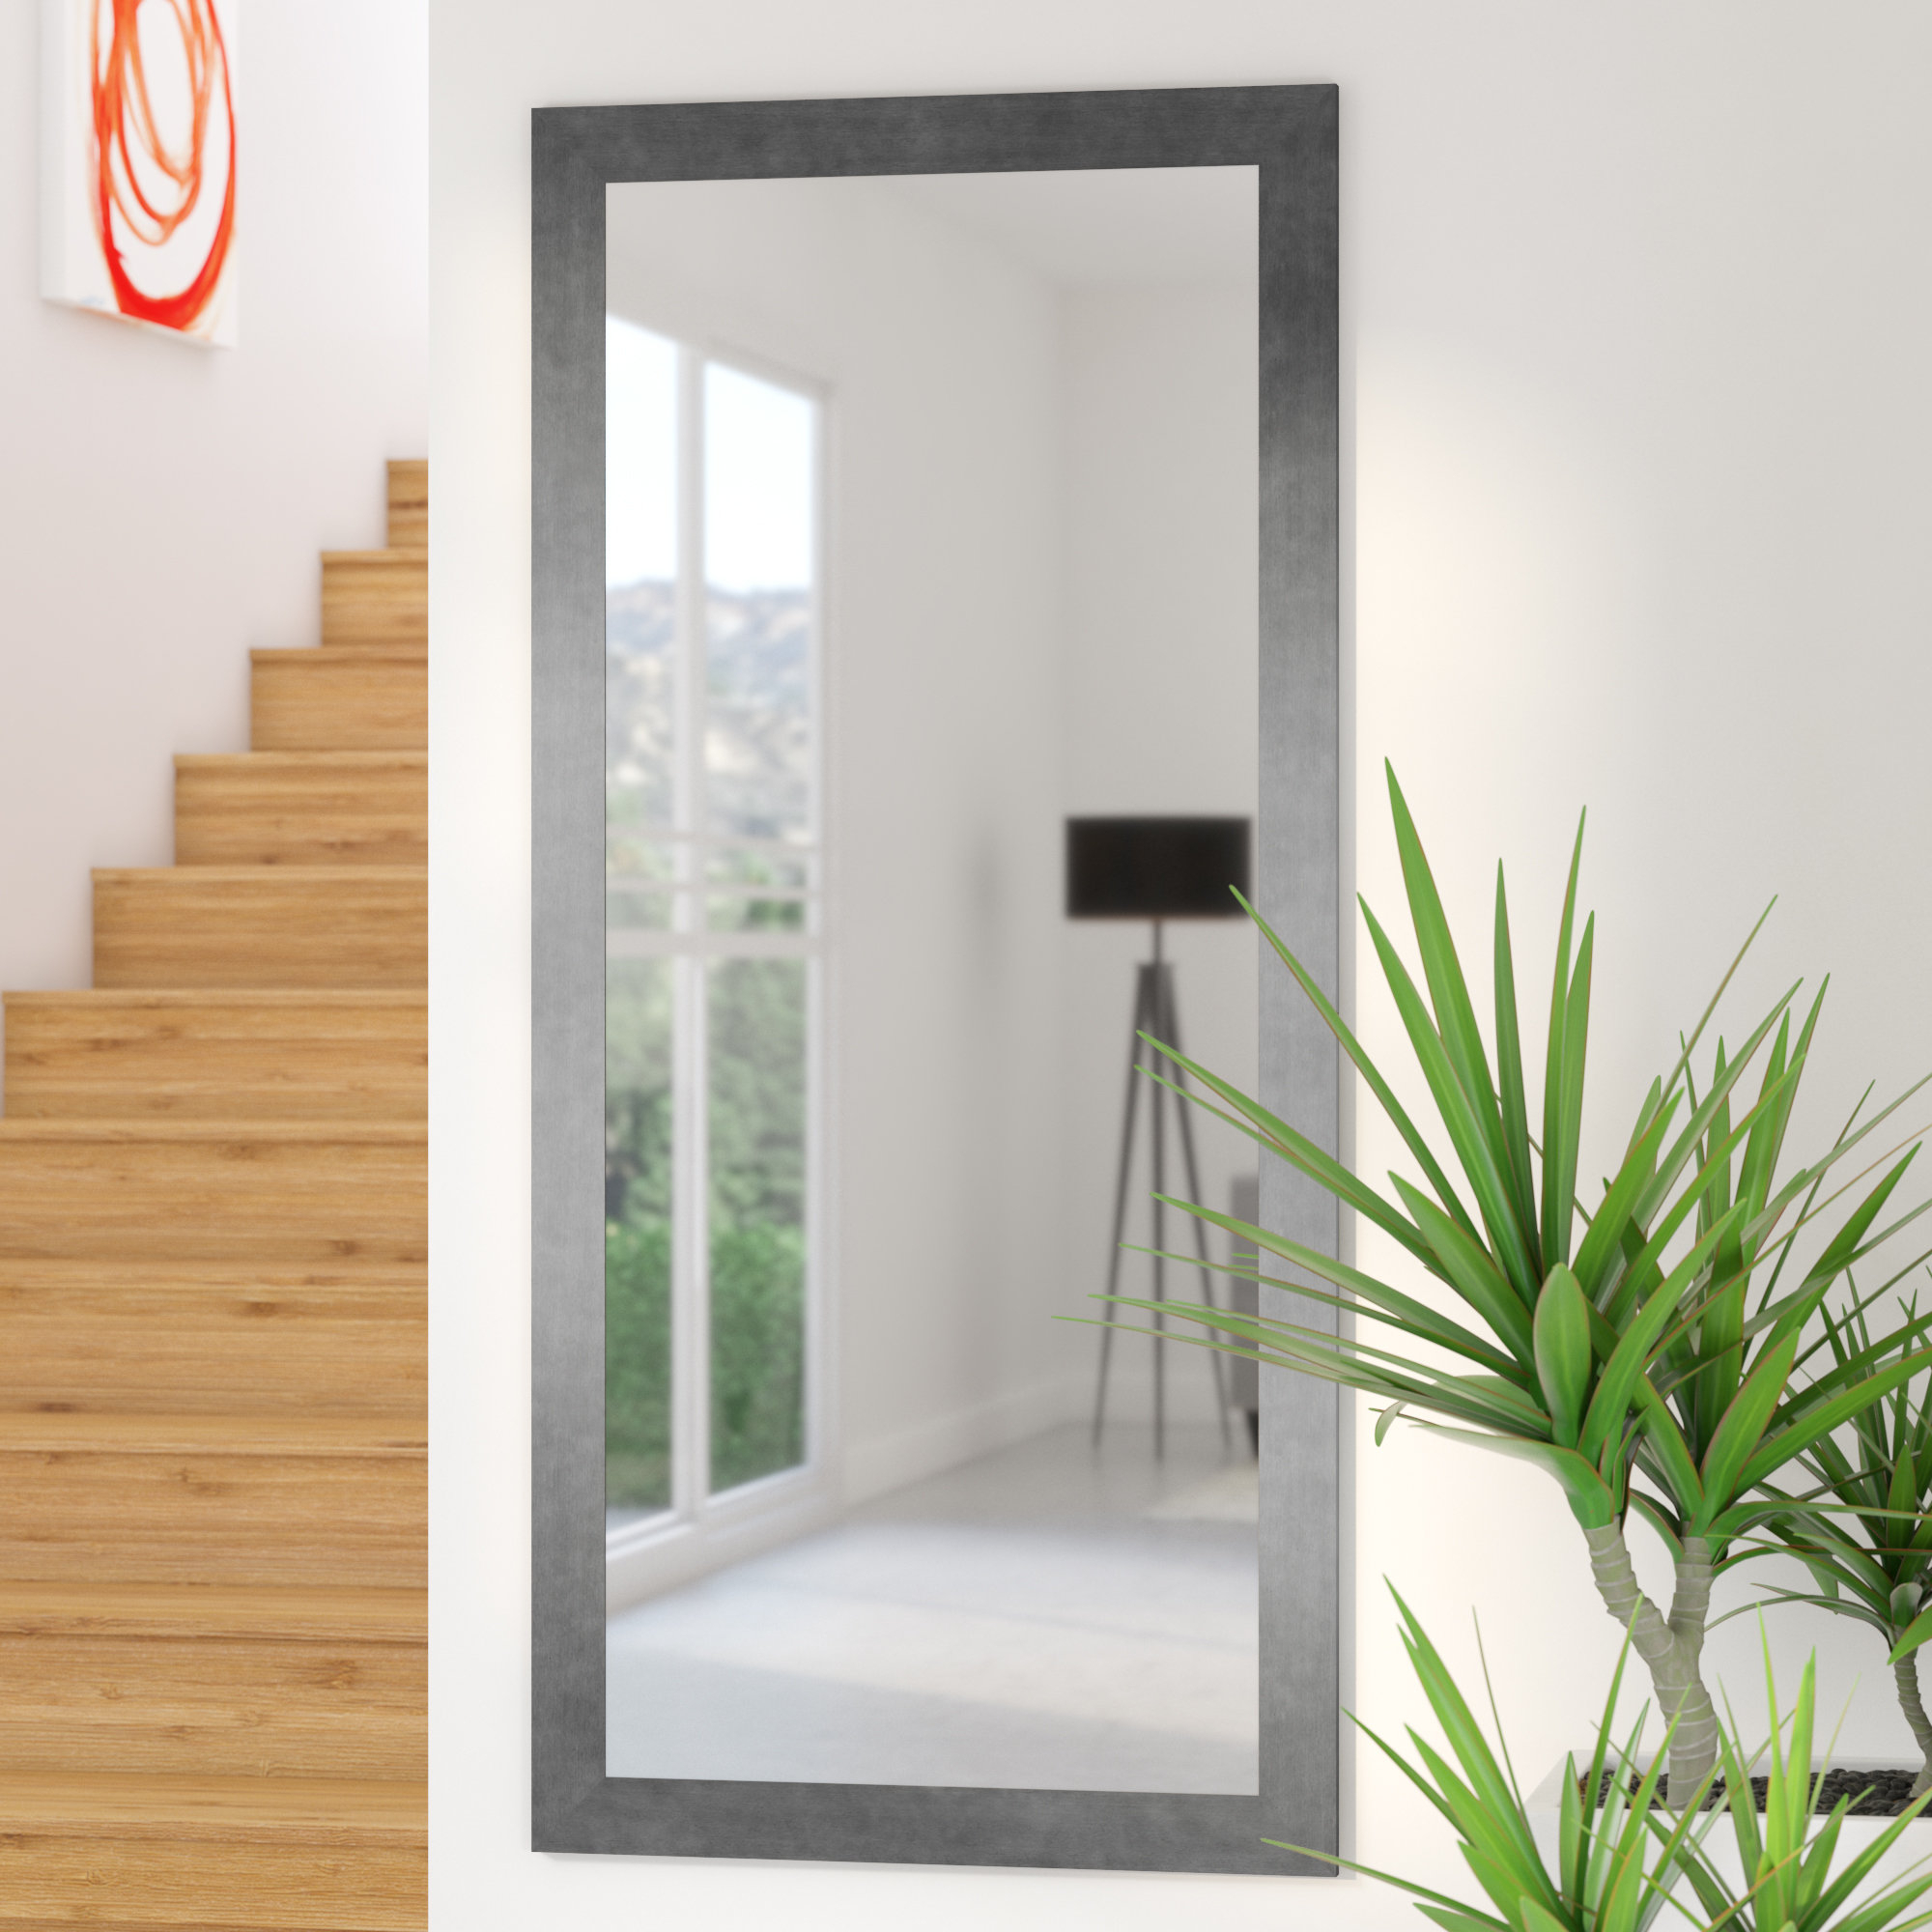 Newest Silver Gunmetal Aluminum Frame Modern & Contemporary Wall Mirror Within Silver Framed Wall Mirrors (View 11 of 20)